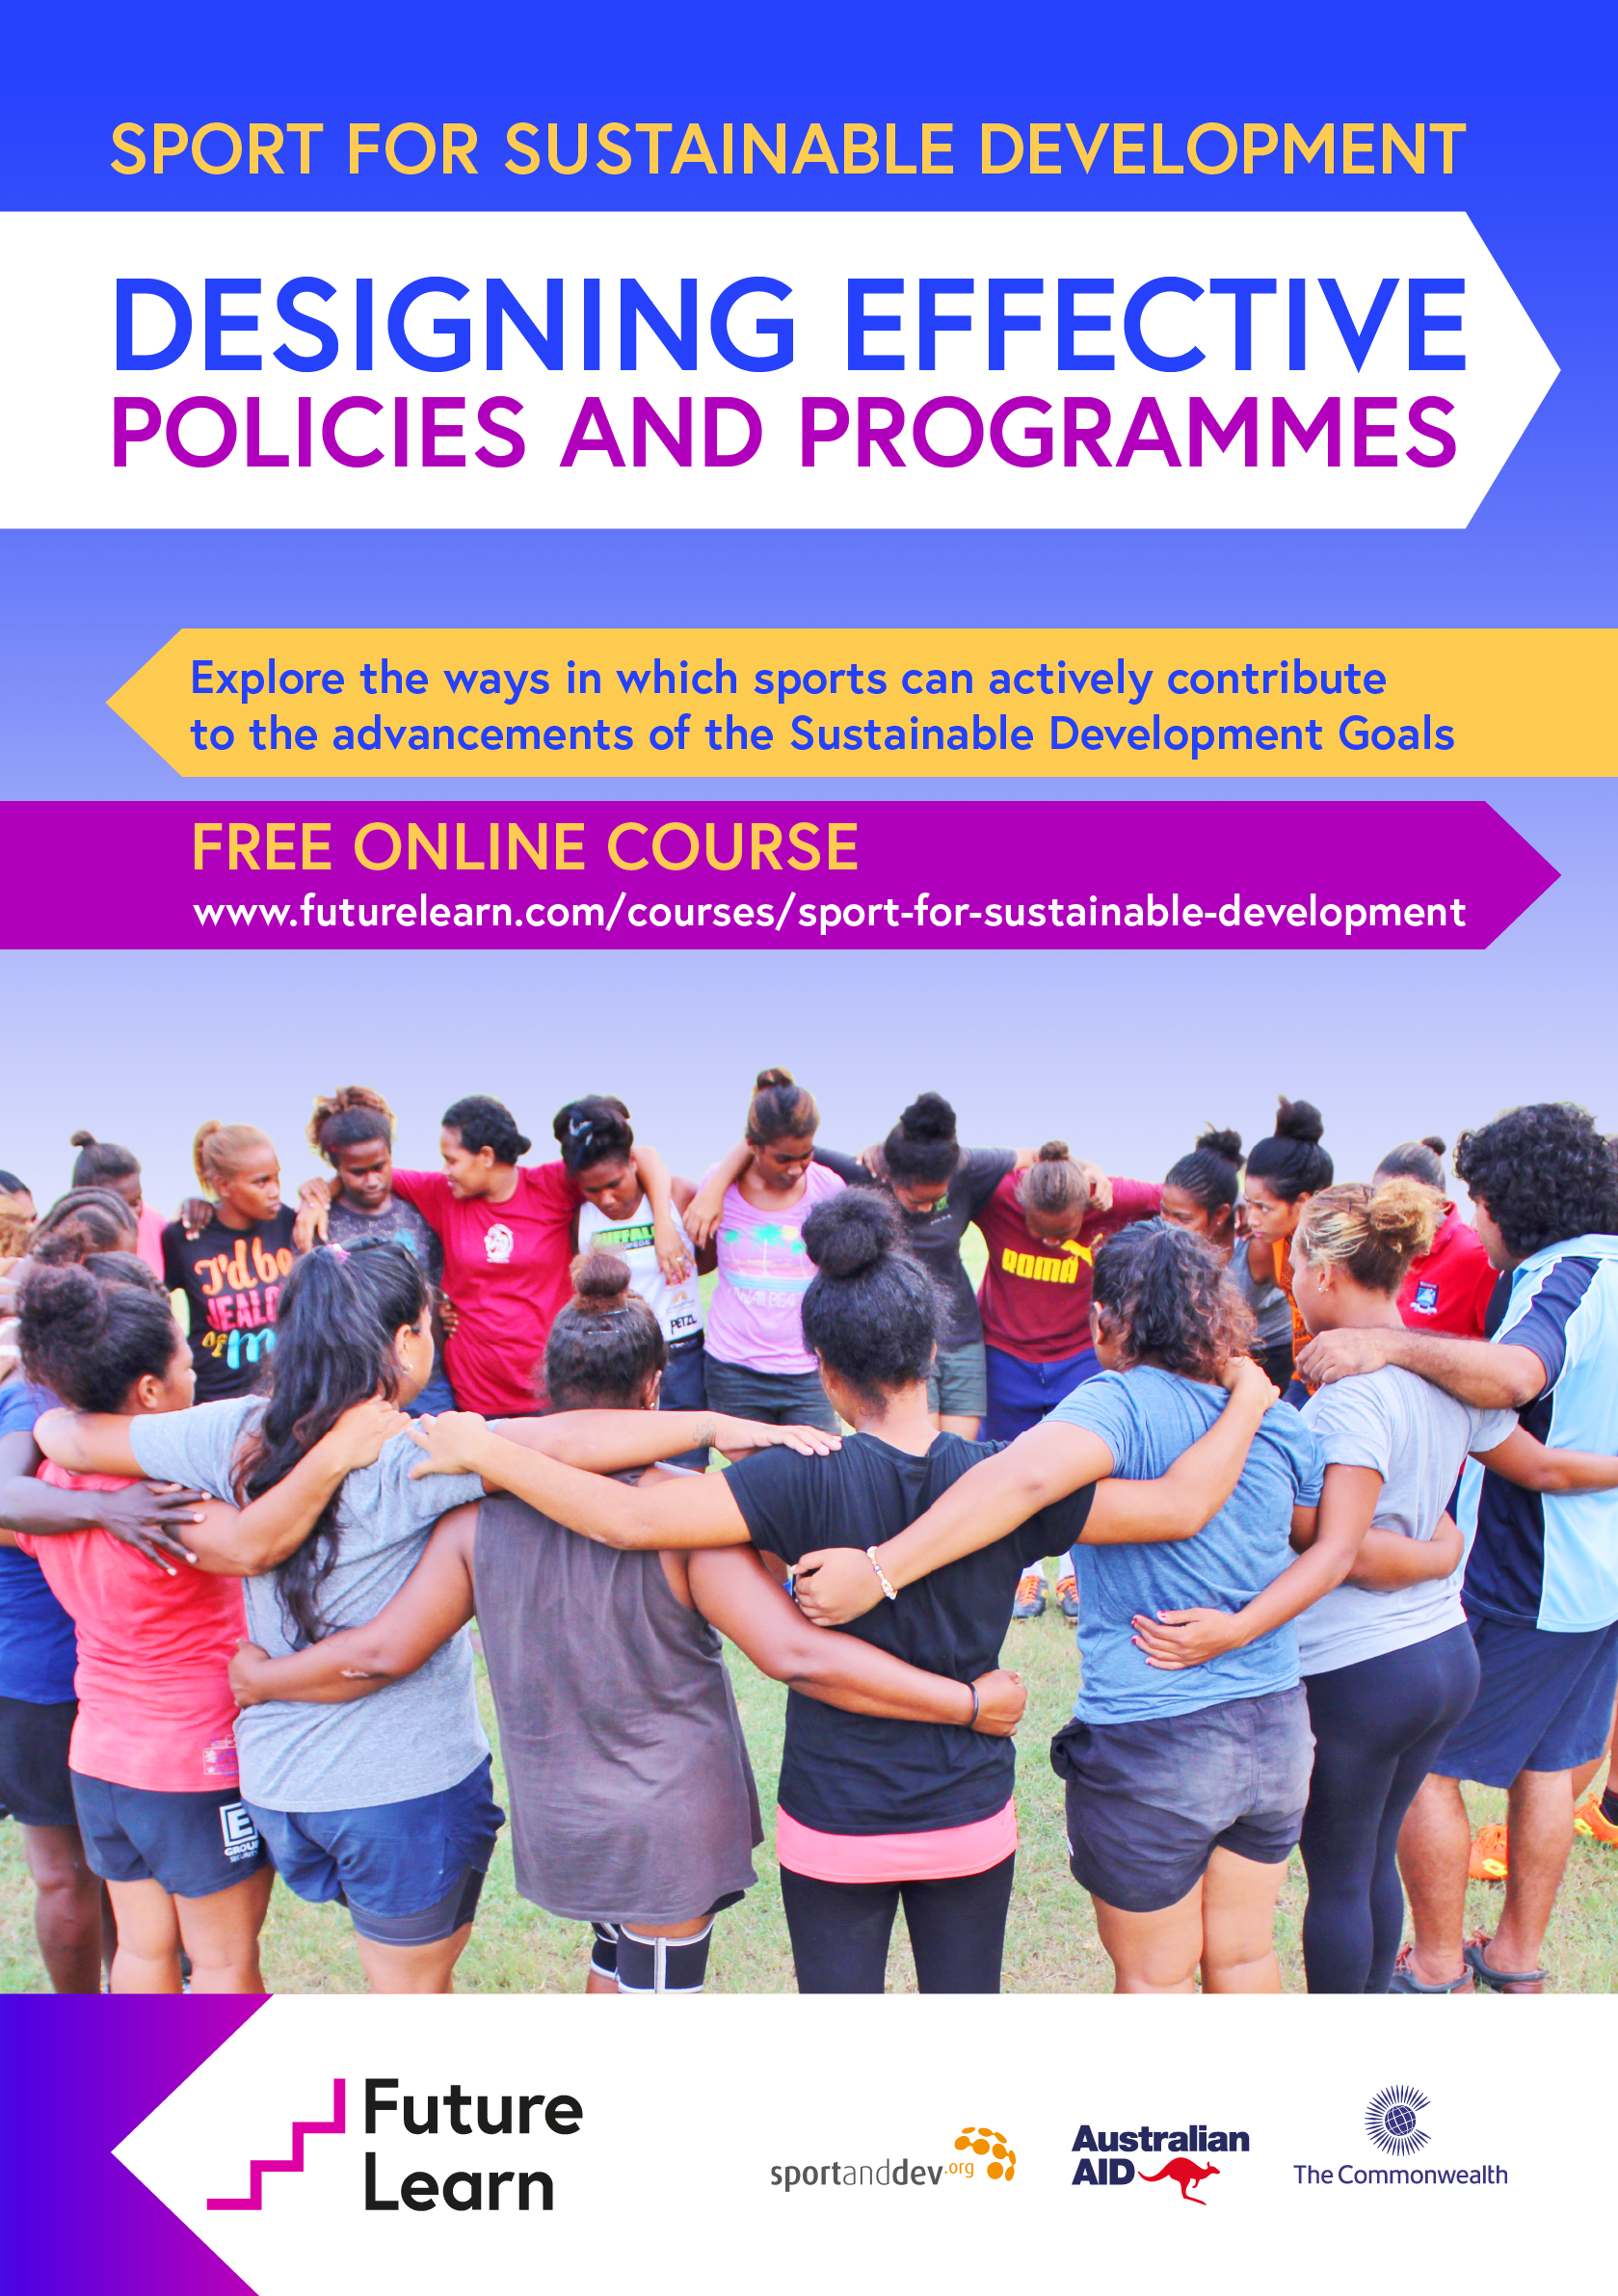 Launch of First Online Global Course on Sport and the Sustainable Development Goals